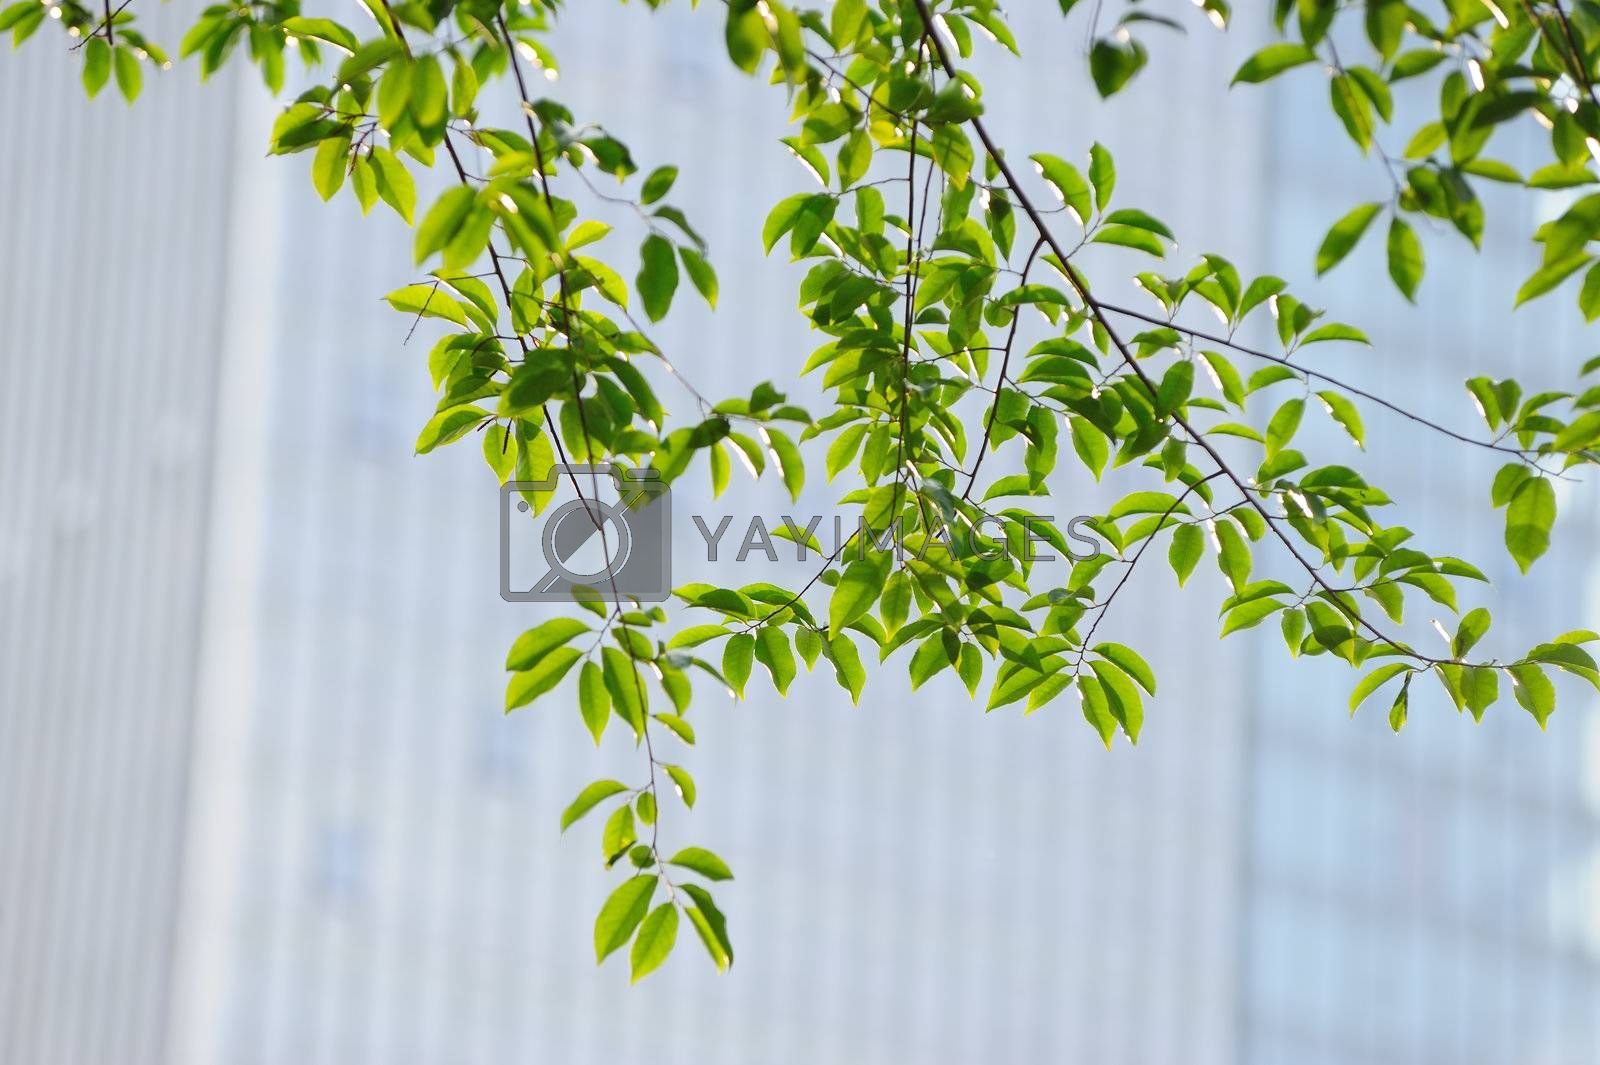 A bunch of green leaves on the tree